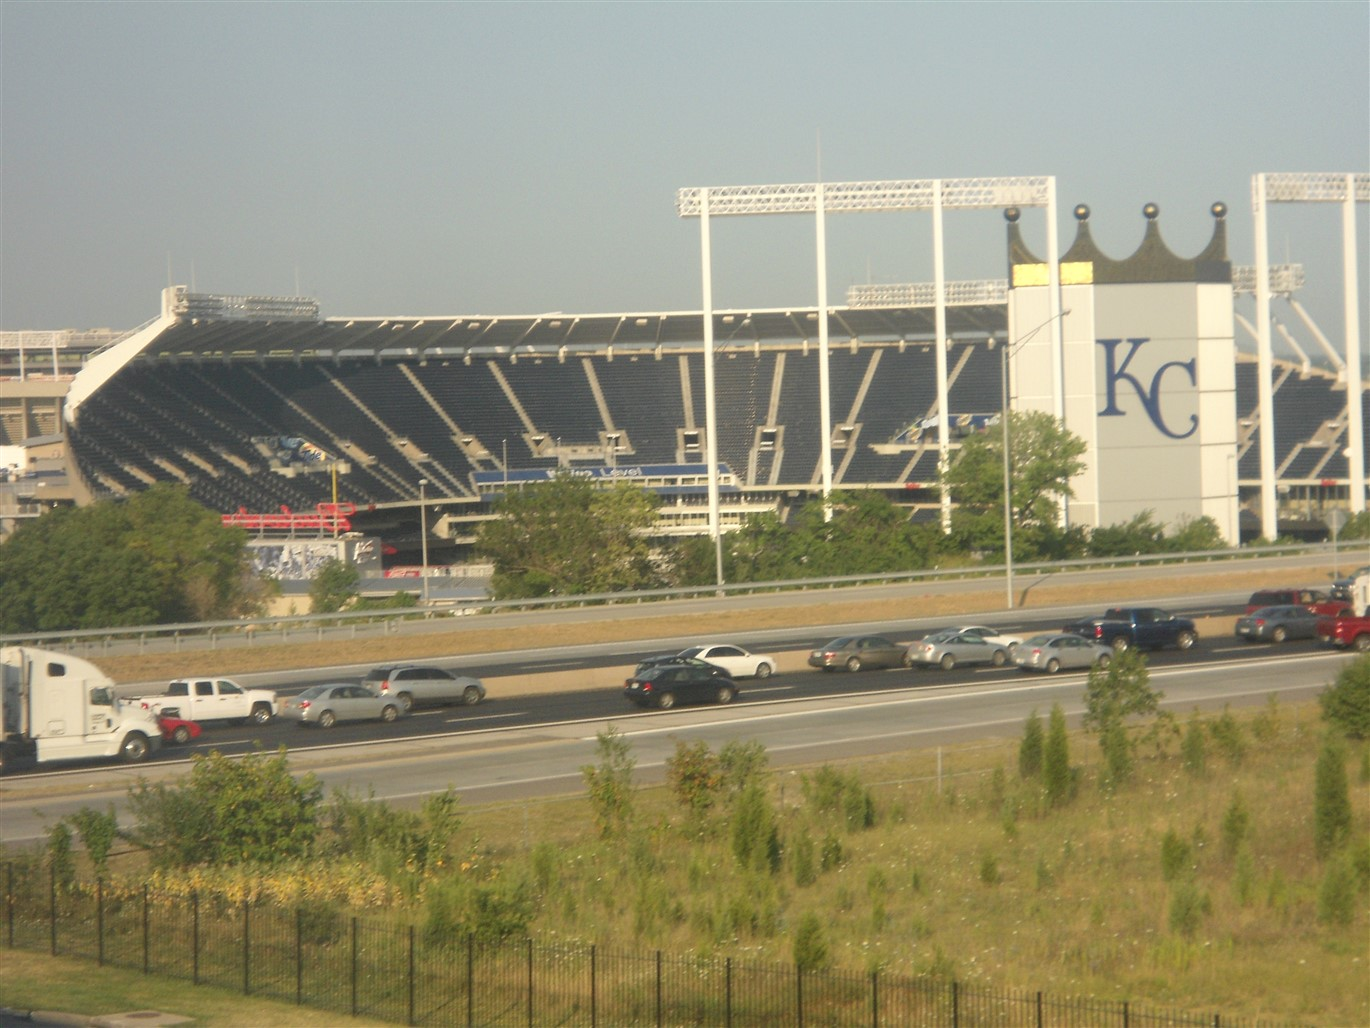 2012 07 02 1 Kansas City Stadiums.jpg